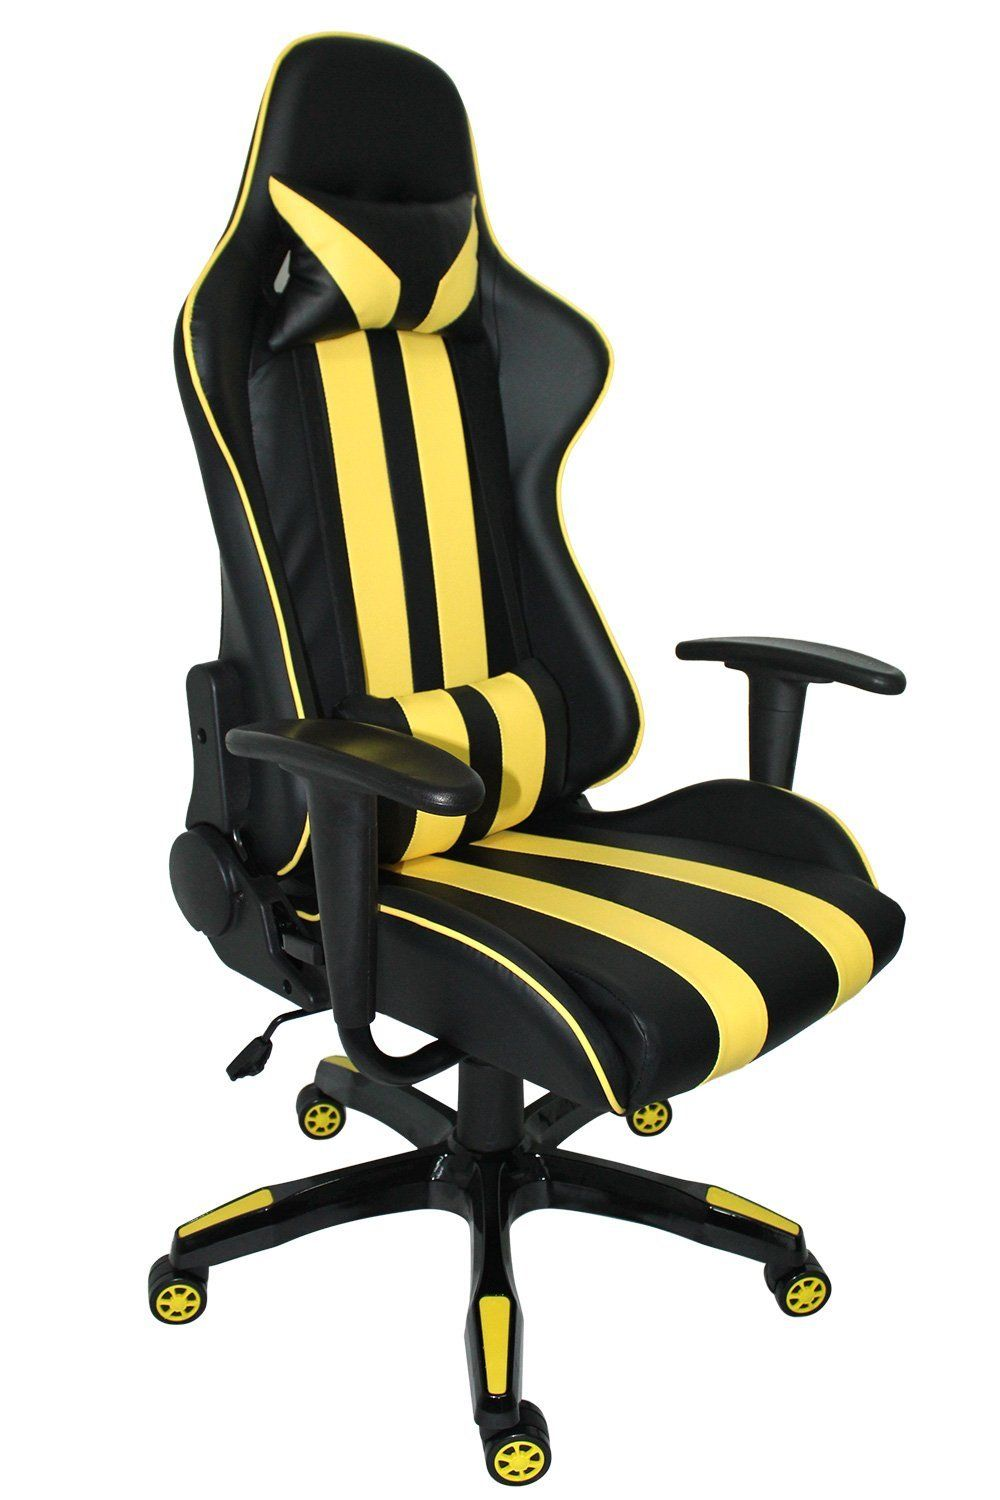 Pin by Five Stars on Chairs High back chairs, Gaming